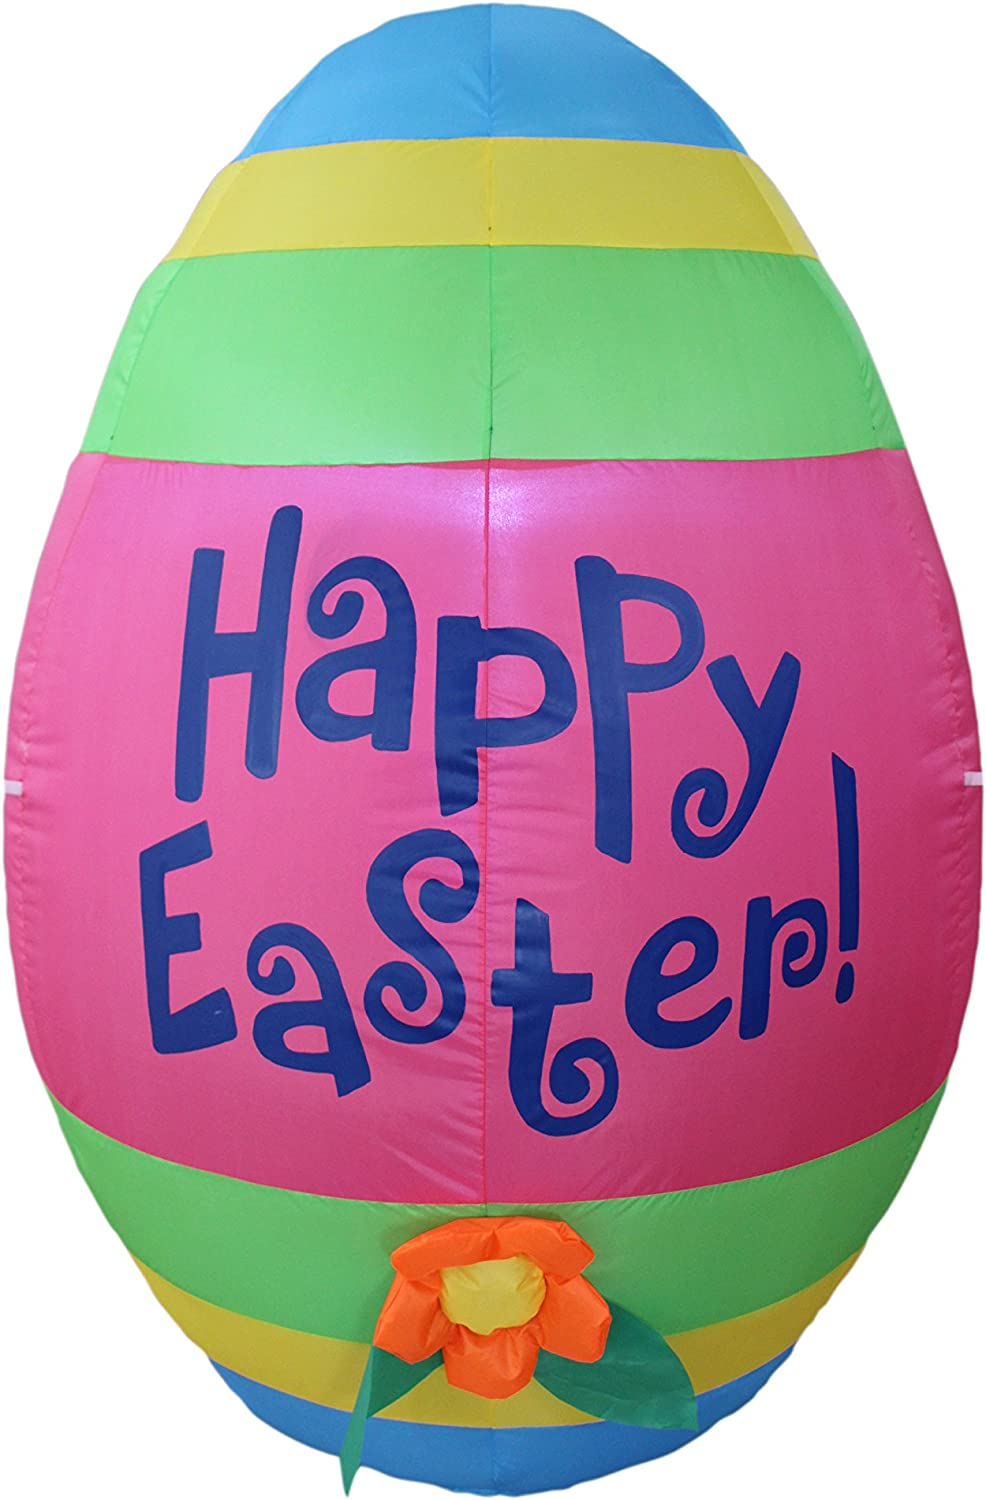 4 Foot Tall Inflatable Party Cute with Easter Flowe Egg Colorful Cash Max 82% OFF special price